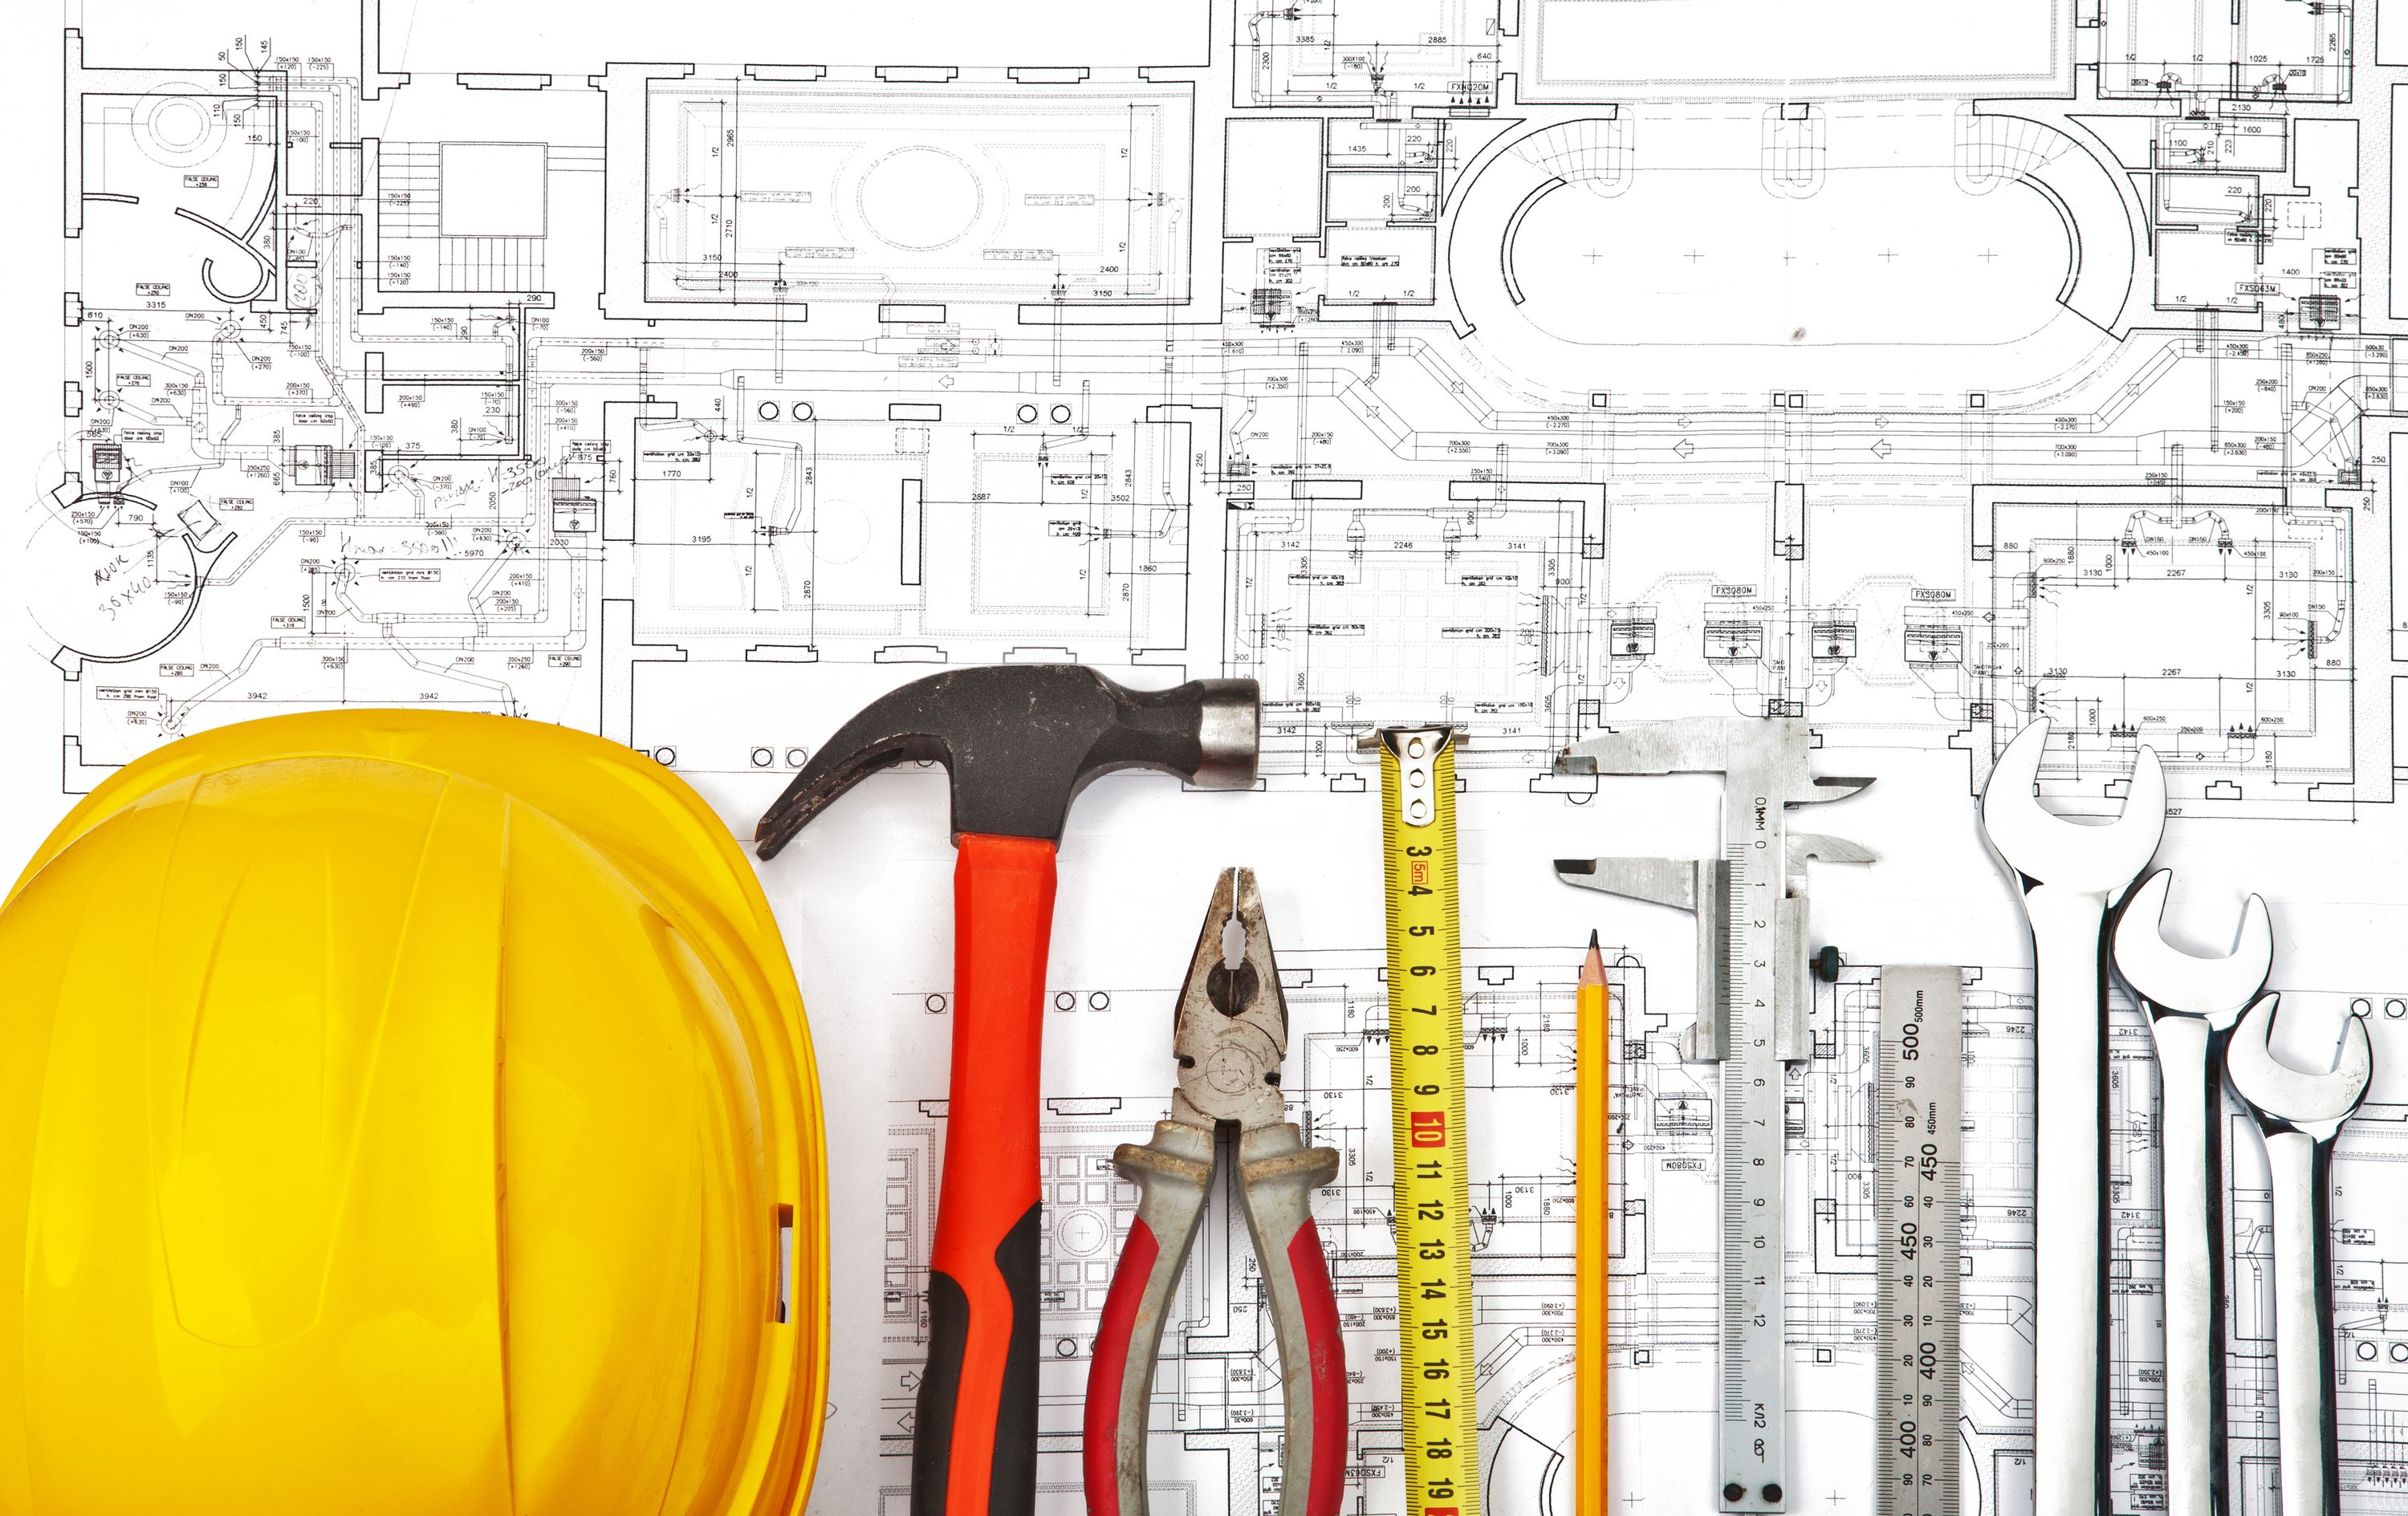 Construction & Facilities Maintenance Class click here for more details